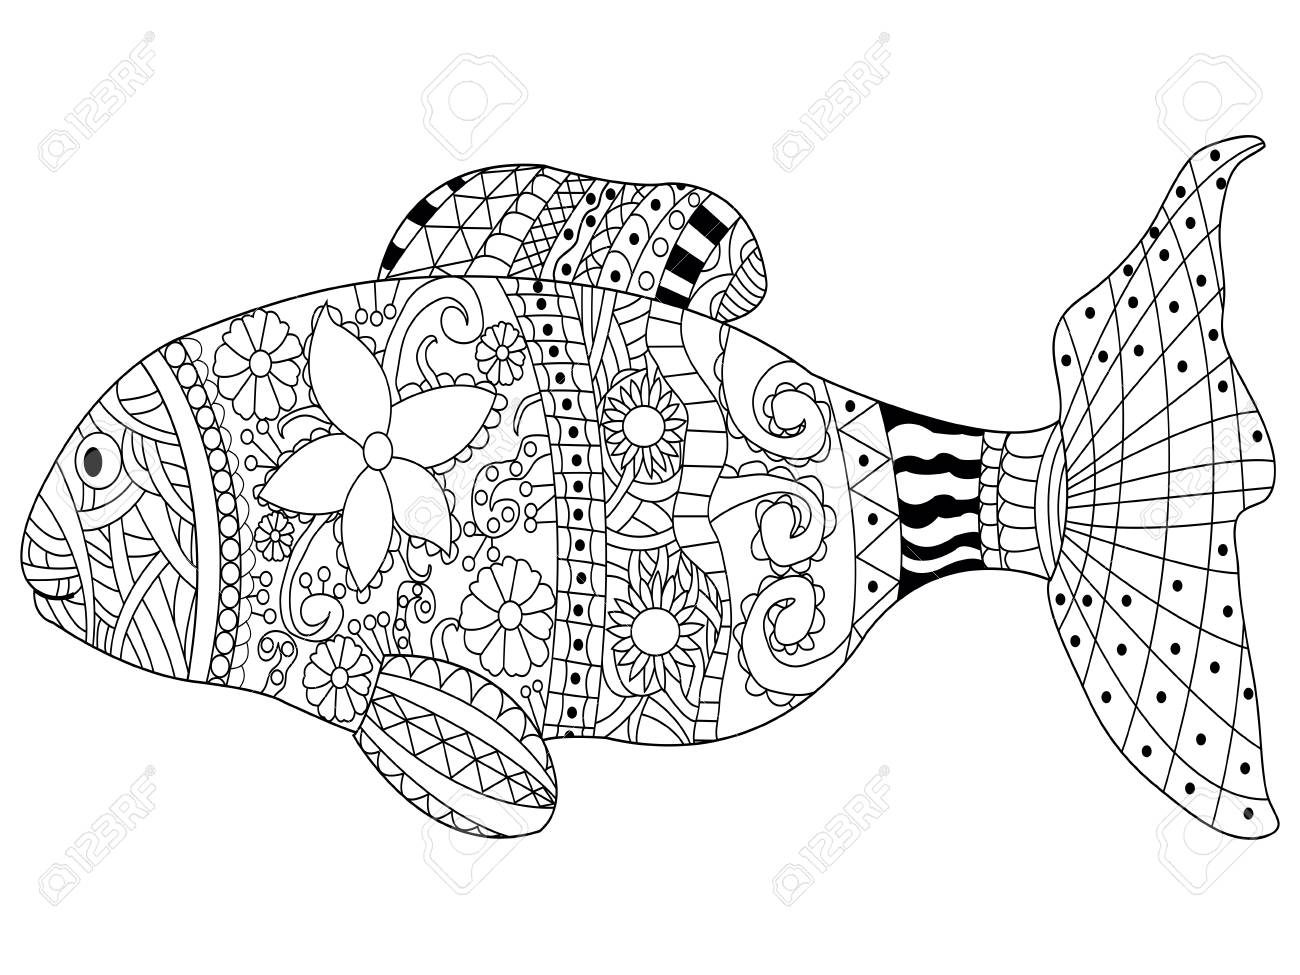 Fish Sea Animal Coloring Book For Adults Vector Illustration